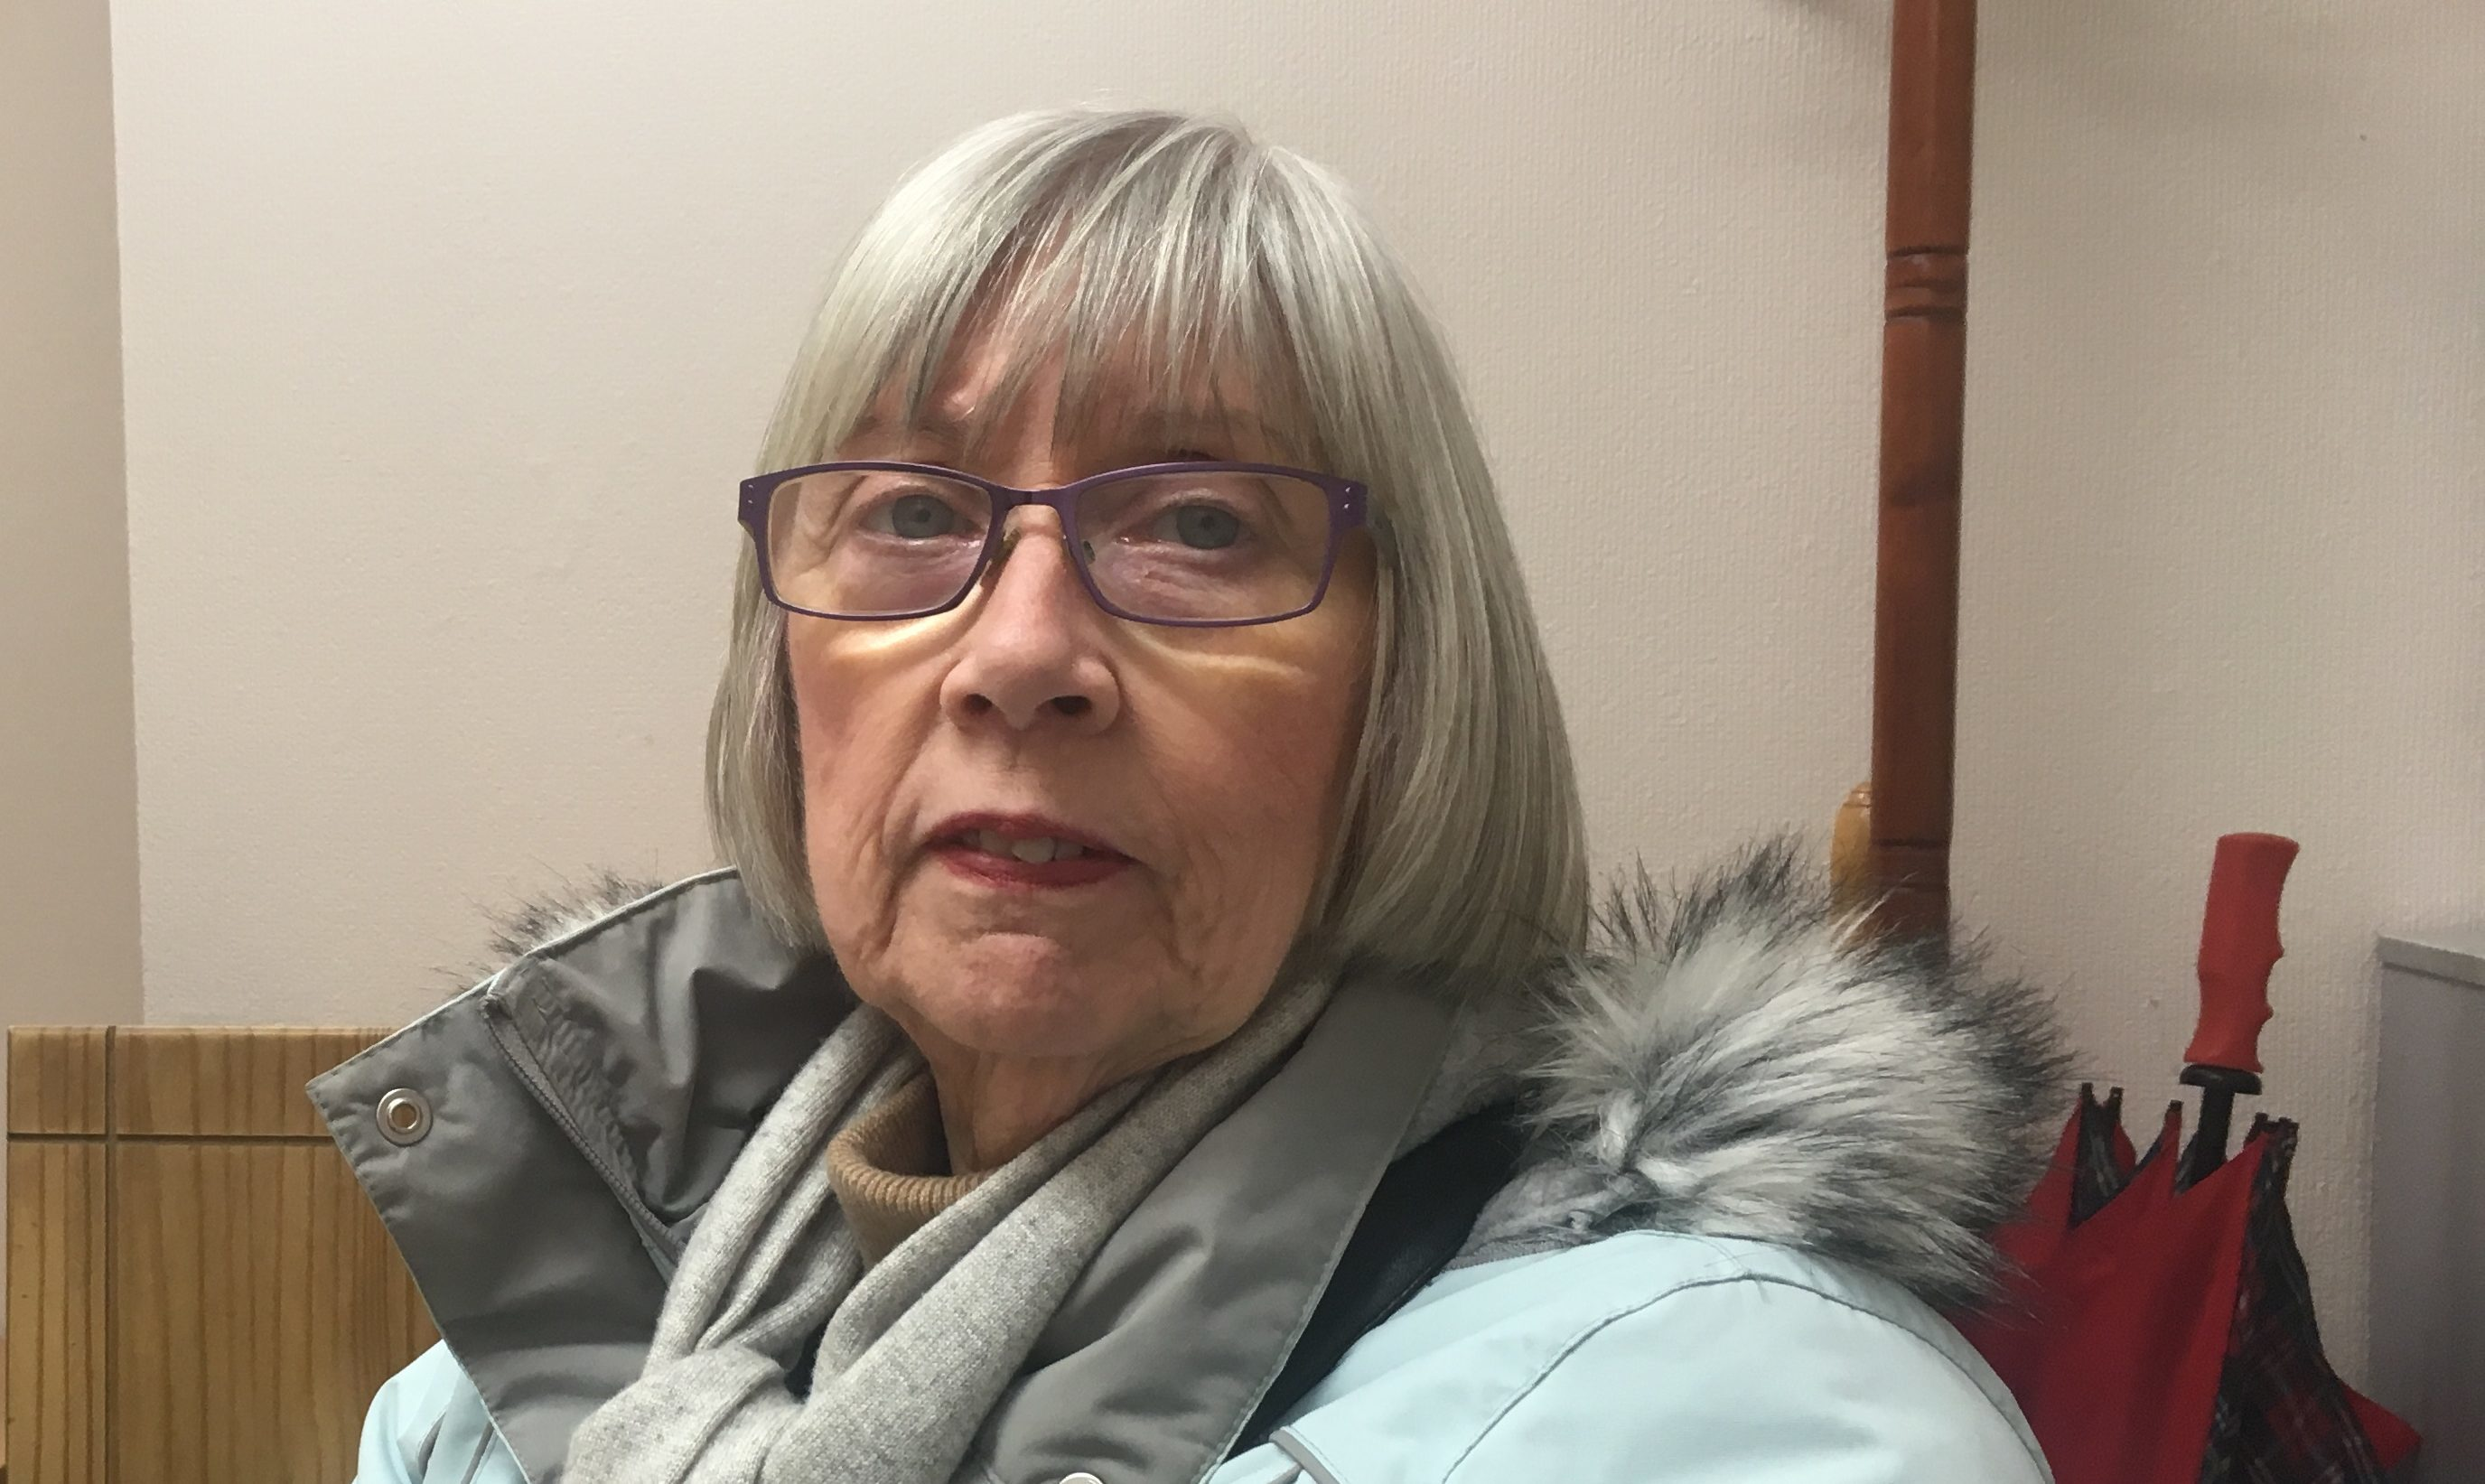 Susan Lamour has reported her missing cane to police.